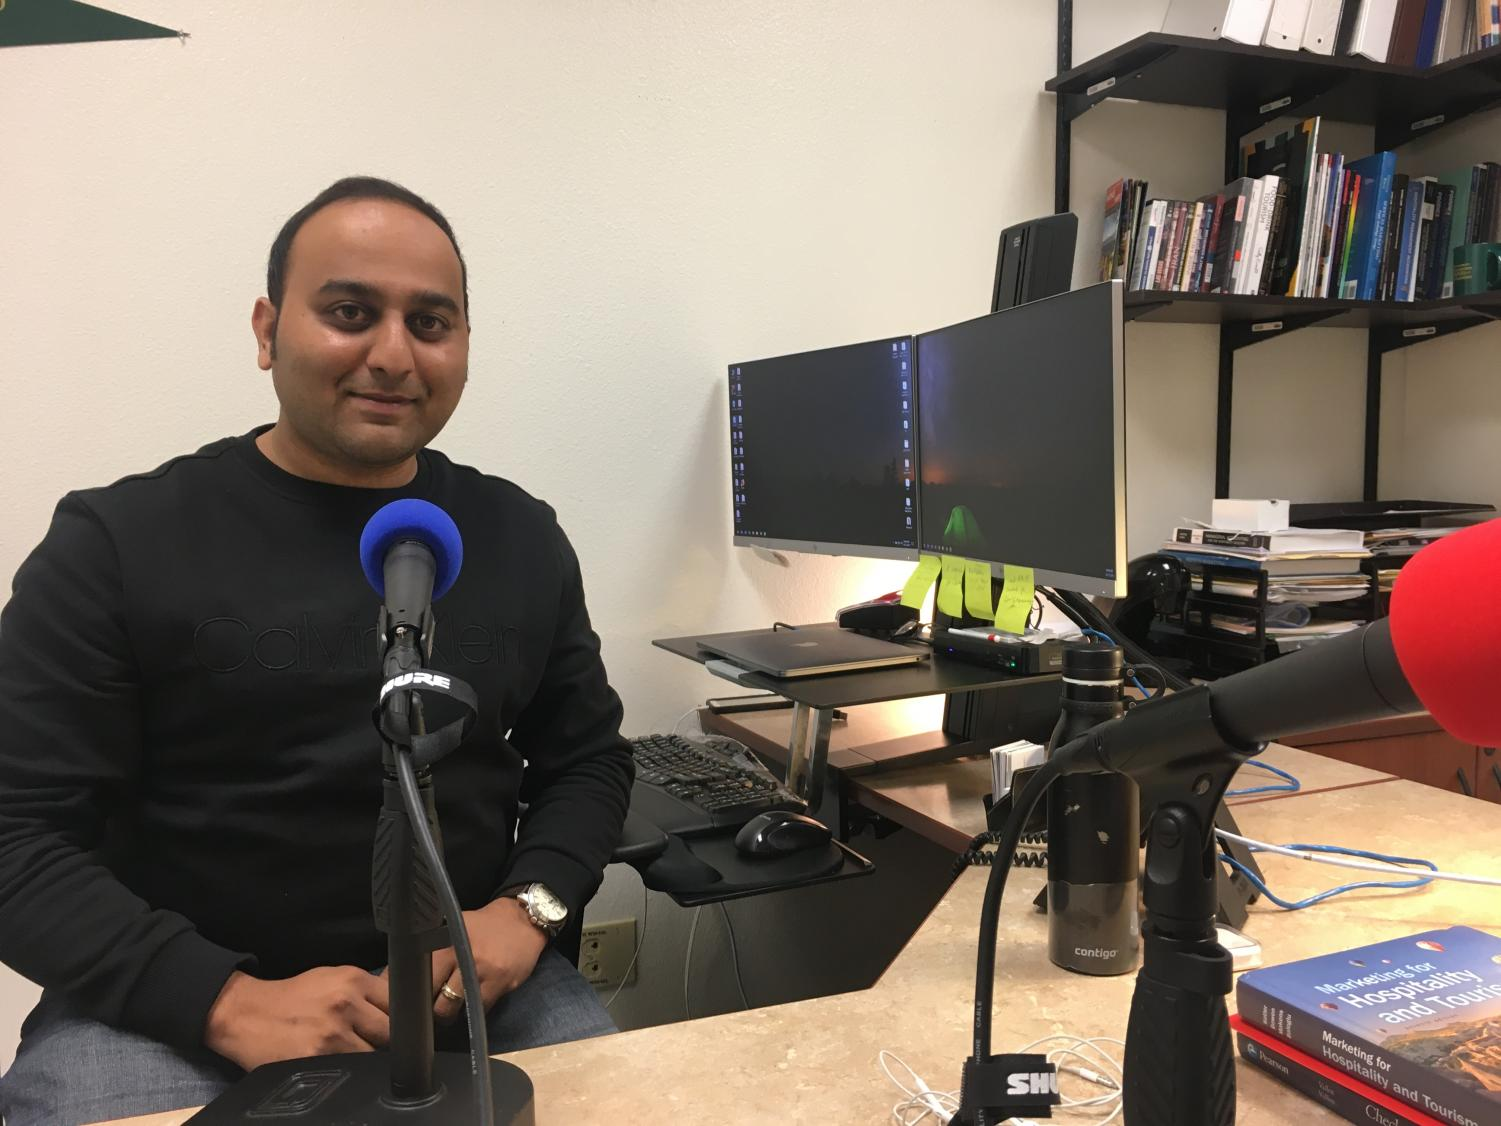 Professor of Hospitality and Tourism Abhijeet Shirsat in his office with getting ready for The State Hornet News Podcast. Shirsat's dissertation focused on fake news and its spread on social media.